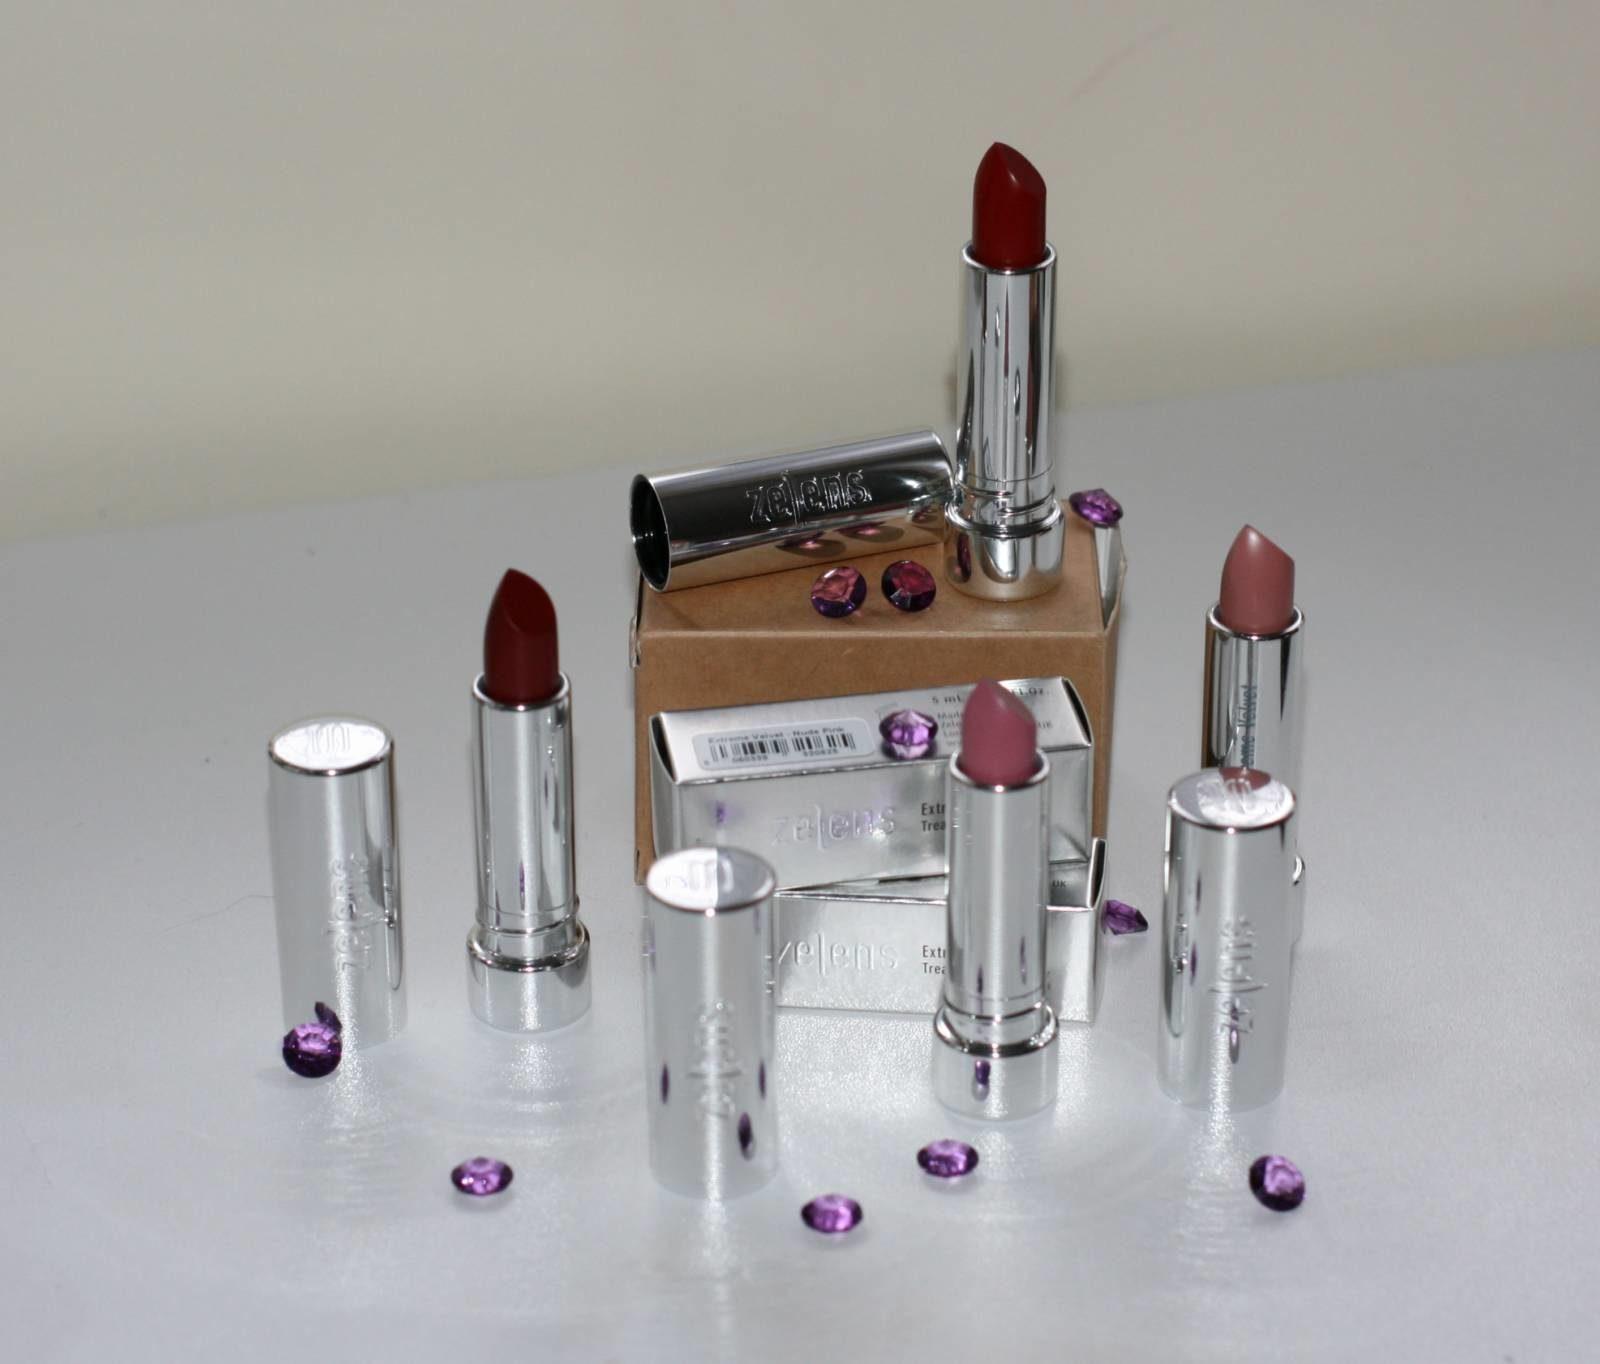 Zelens Extreme Velvet Lipsticks Review